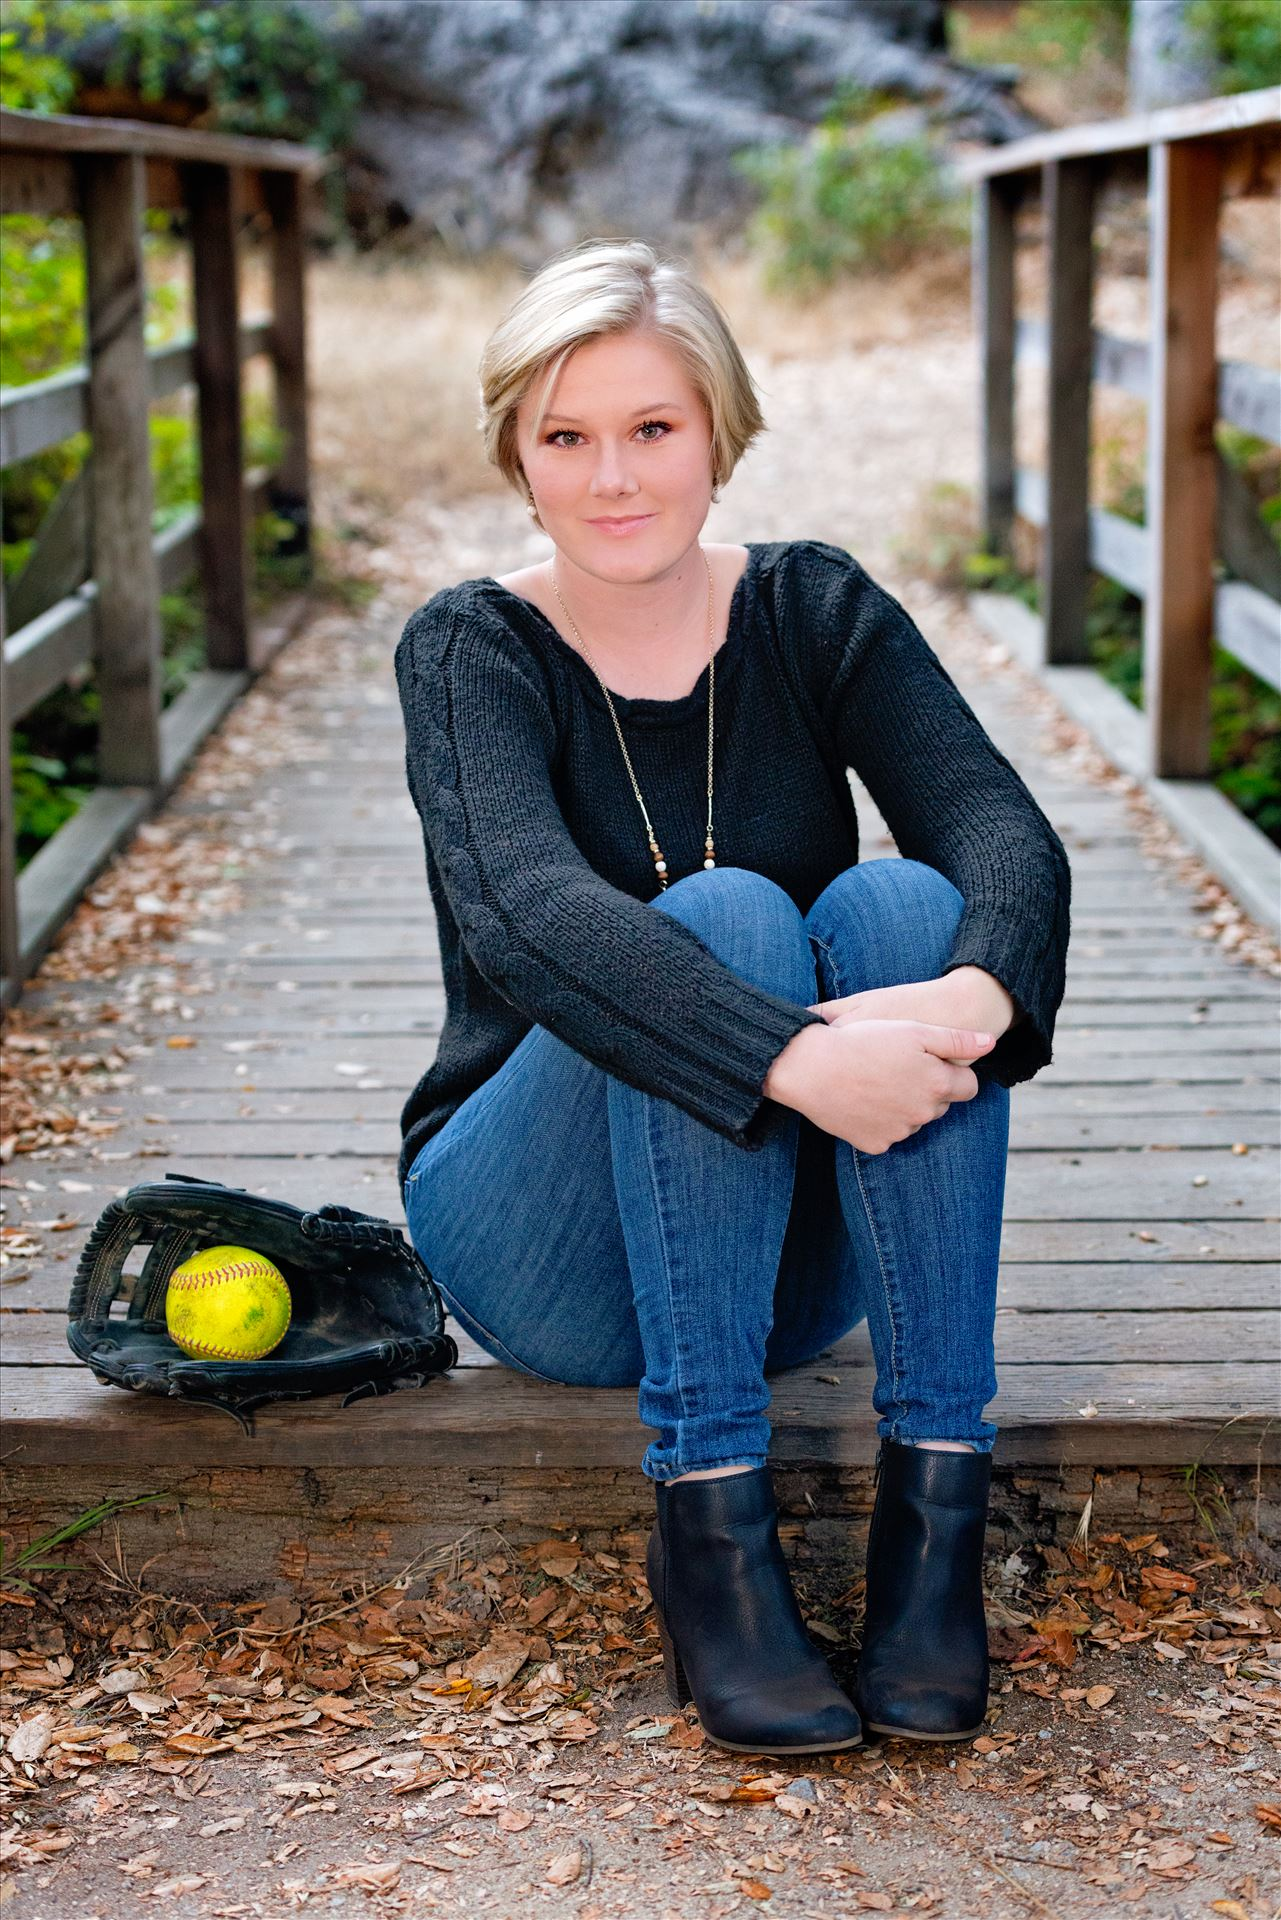 Ariel Ingram Senior Portraits 25 - Senior Portrait Session 2018 at Los Osos Oaks Reserve.  San Luis Obispo and Central Coast Senior Portrait photographer Mirror's Edge Photography. Senior with softball prop by Sarah Williams